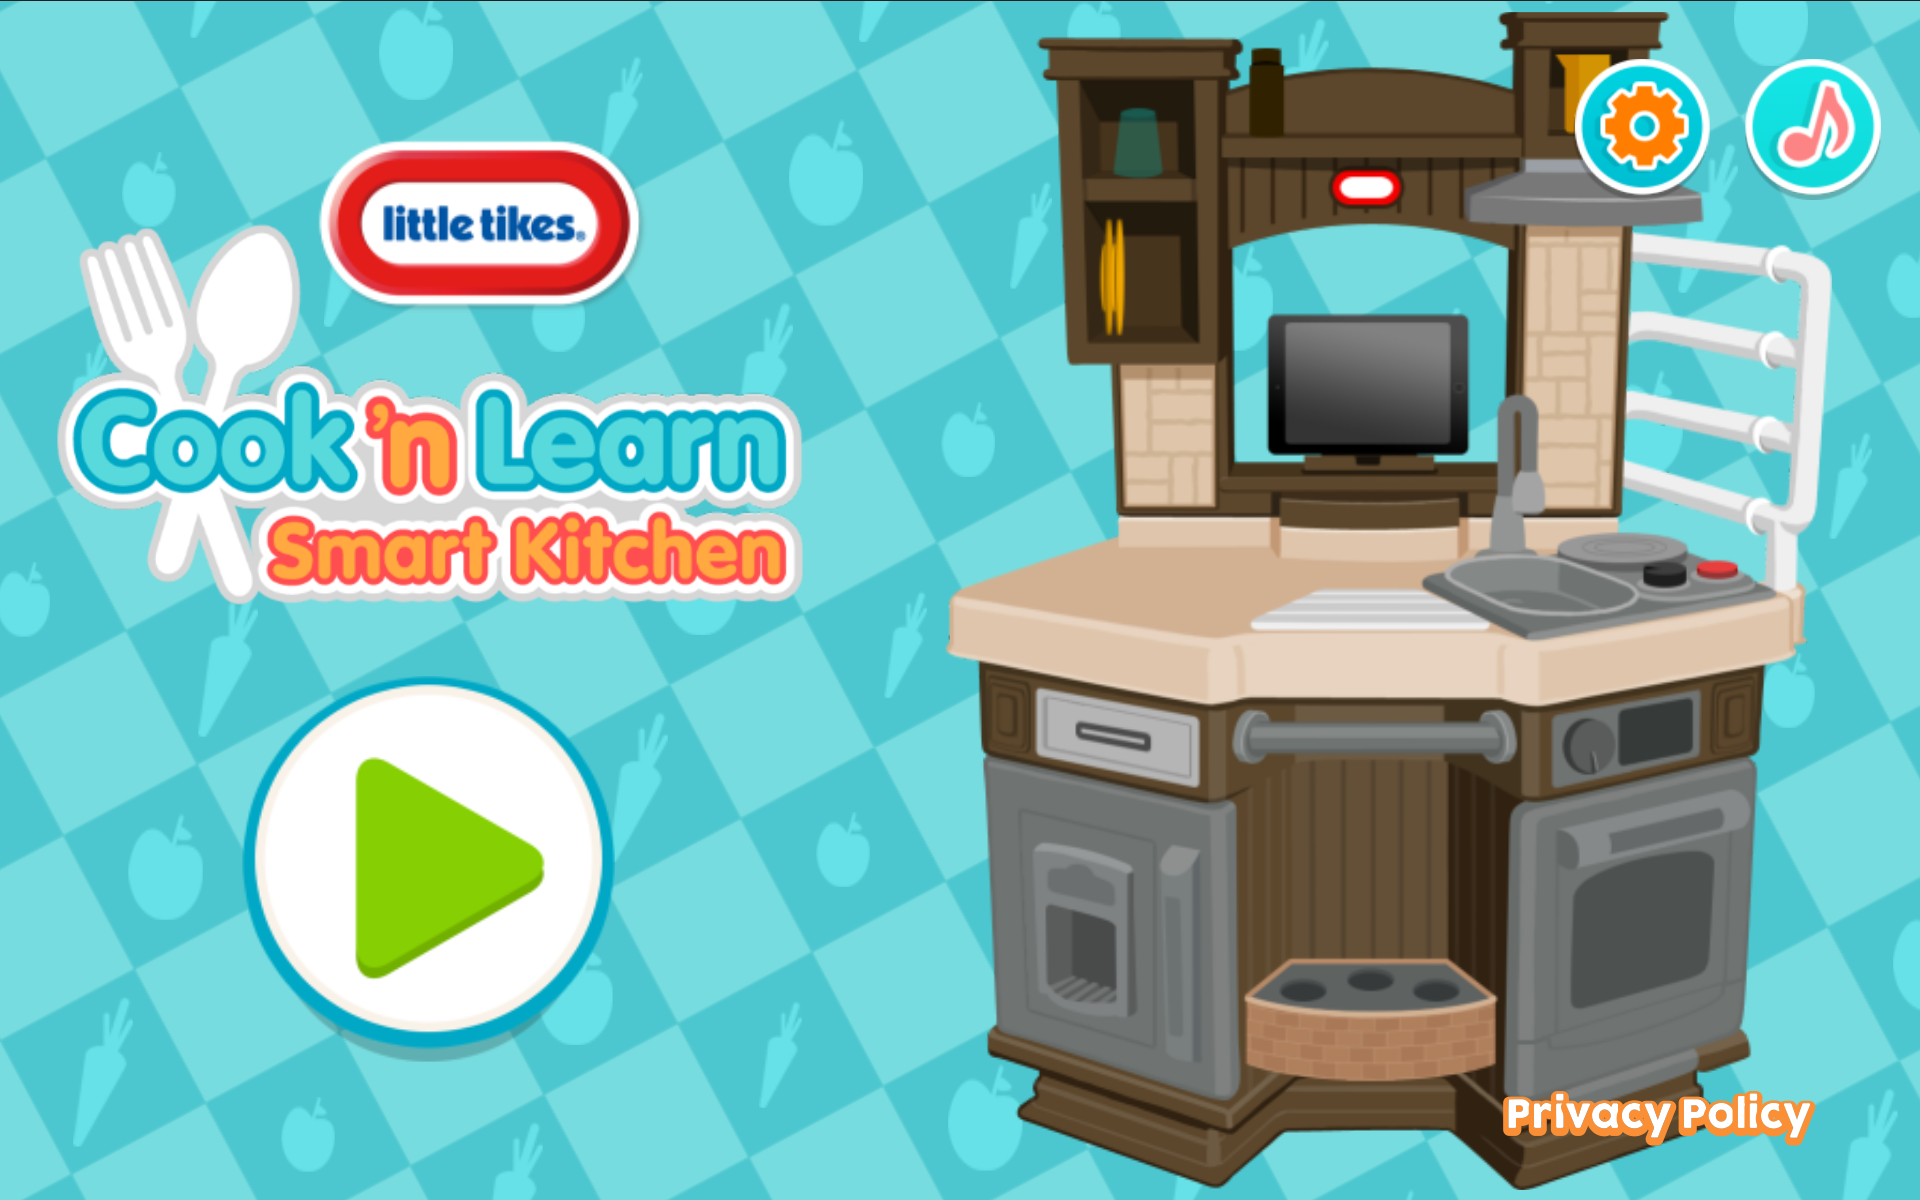 Amazon.com: Little Tikes Cook \'n Learn Smart Kitchen: Appstore for ...